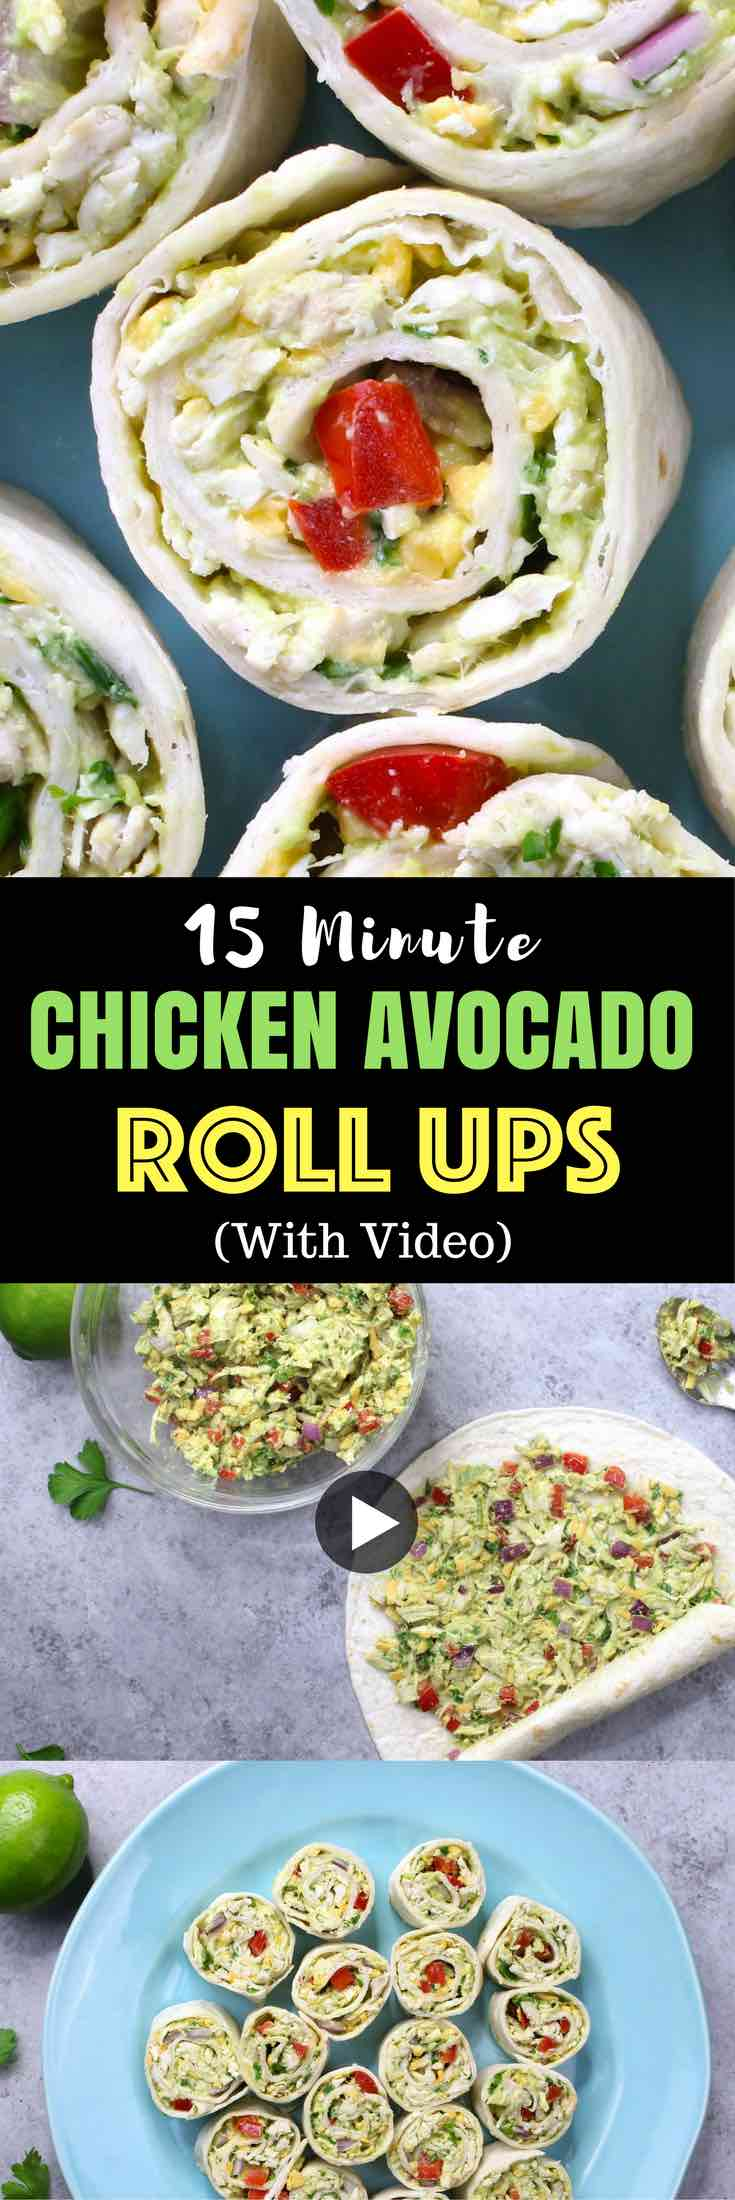 Chicken Avocado Roll Ups are creamy and delicious but also healthy and nutritious. An easy lunch idea or party appetizer that comes together in just 15 minutes, made with flour tortillas, shredded chicken, yogurt, garlic powder, lime, cheese, green onion, bell pepper and red onion. #chickenavocado